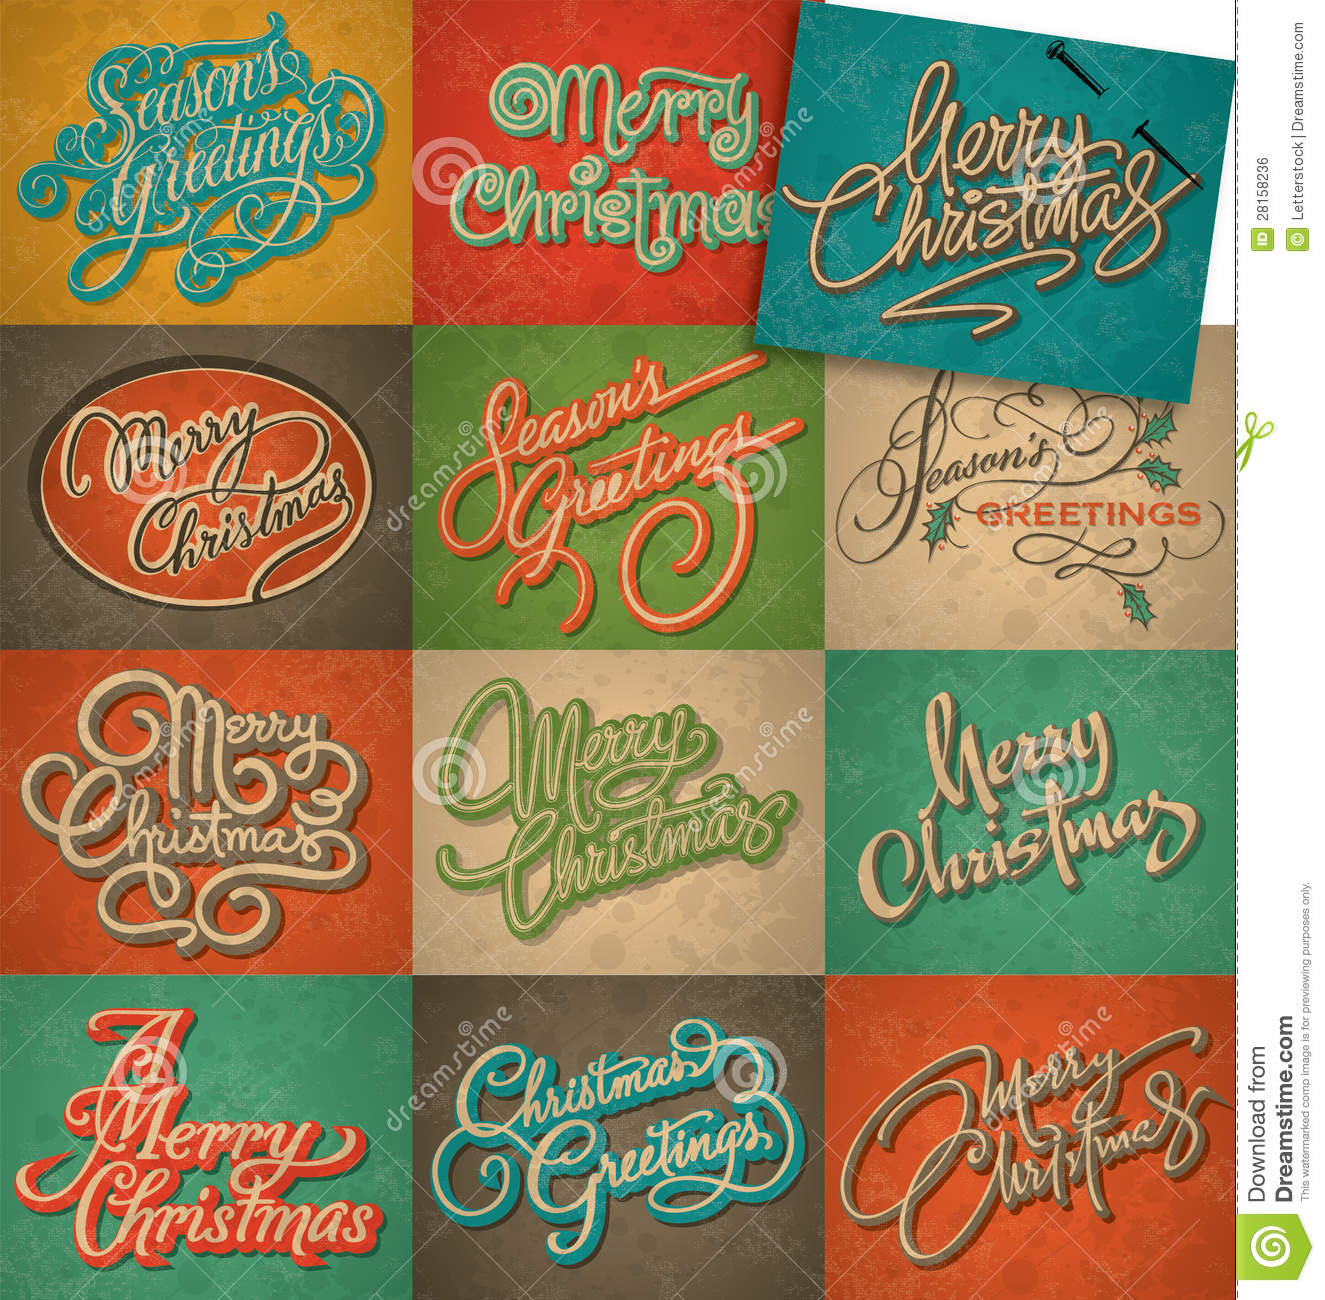 Delightful Vintage Christmas Cards Set (vector)